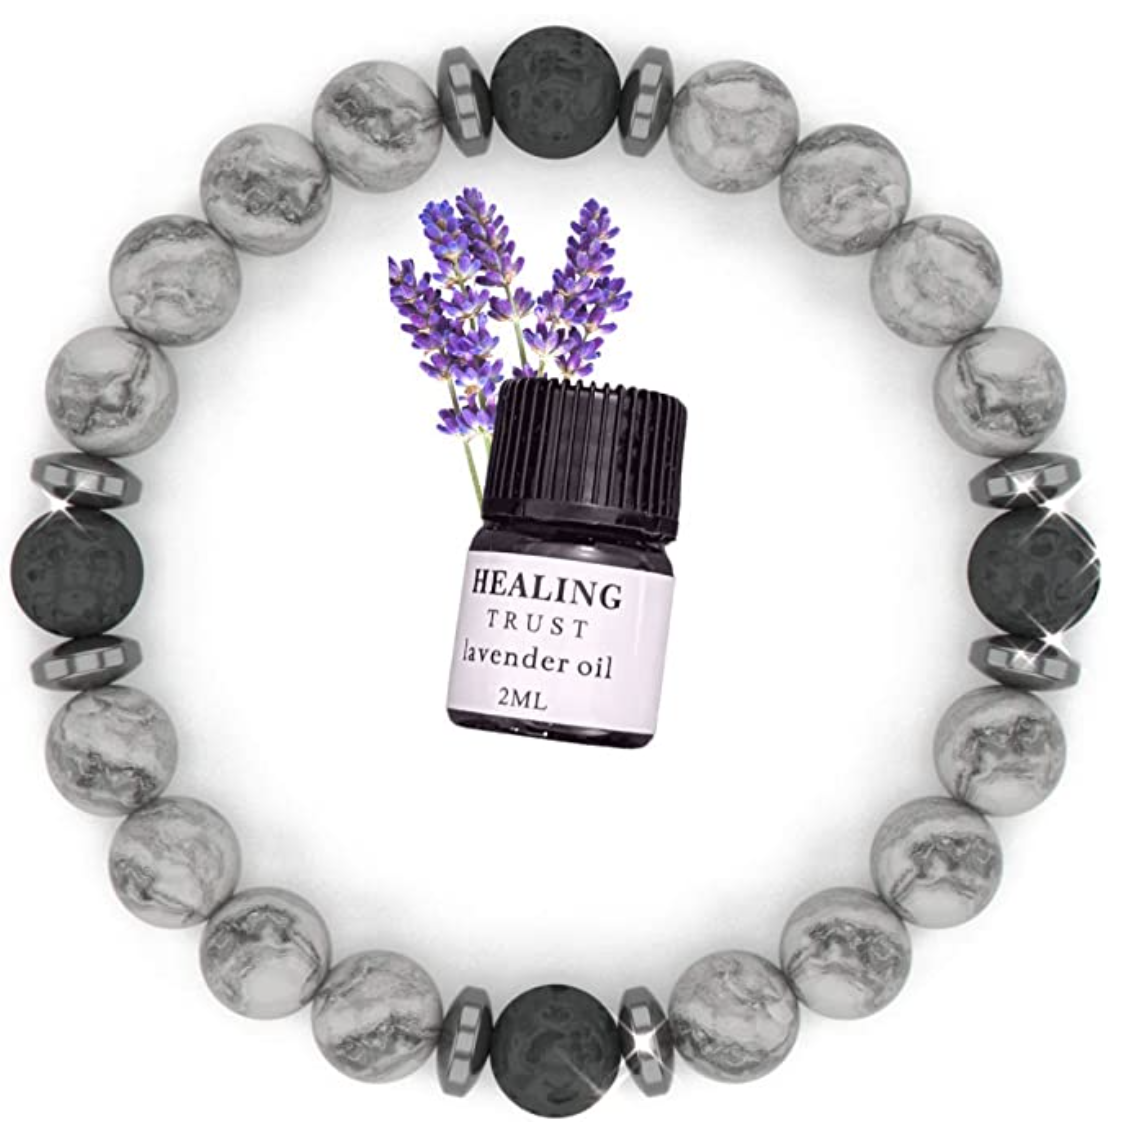 7-calming-anti-anxiety-and-stress-relief-jewelry-pieces-—-under-$30!